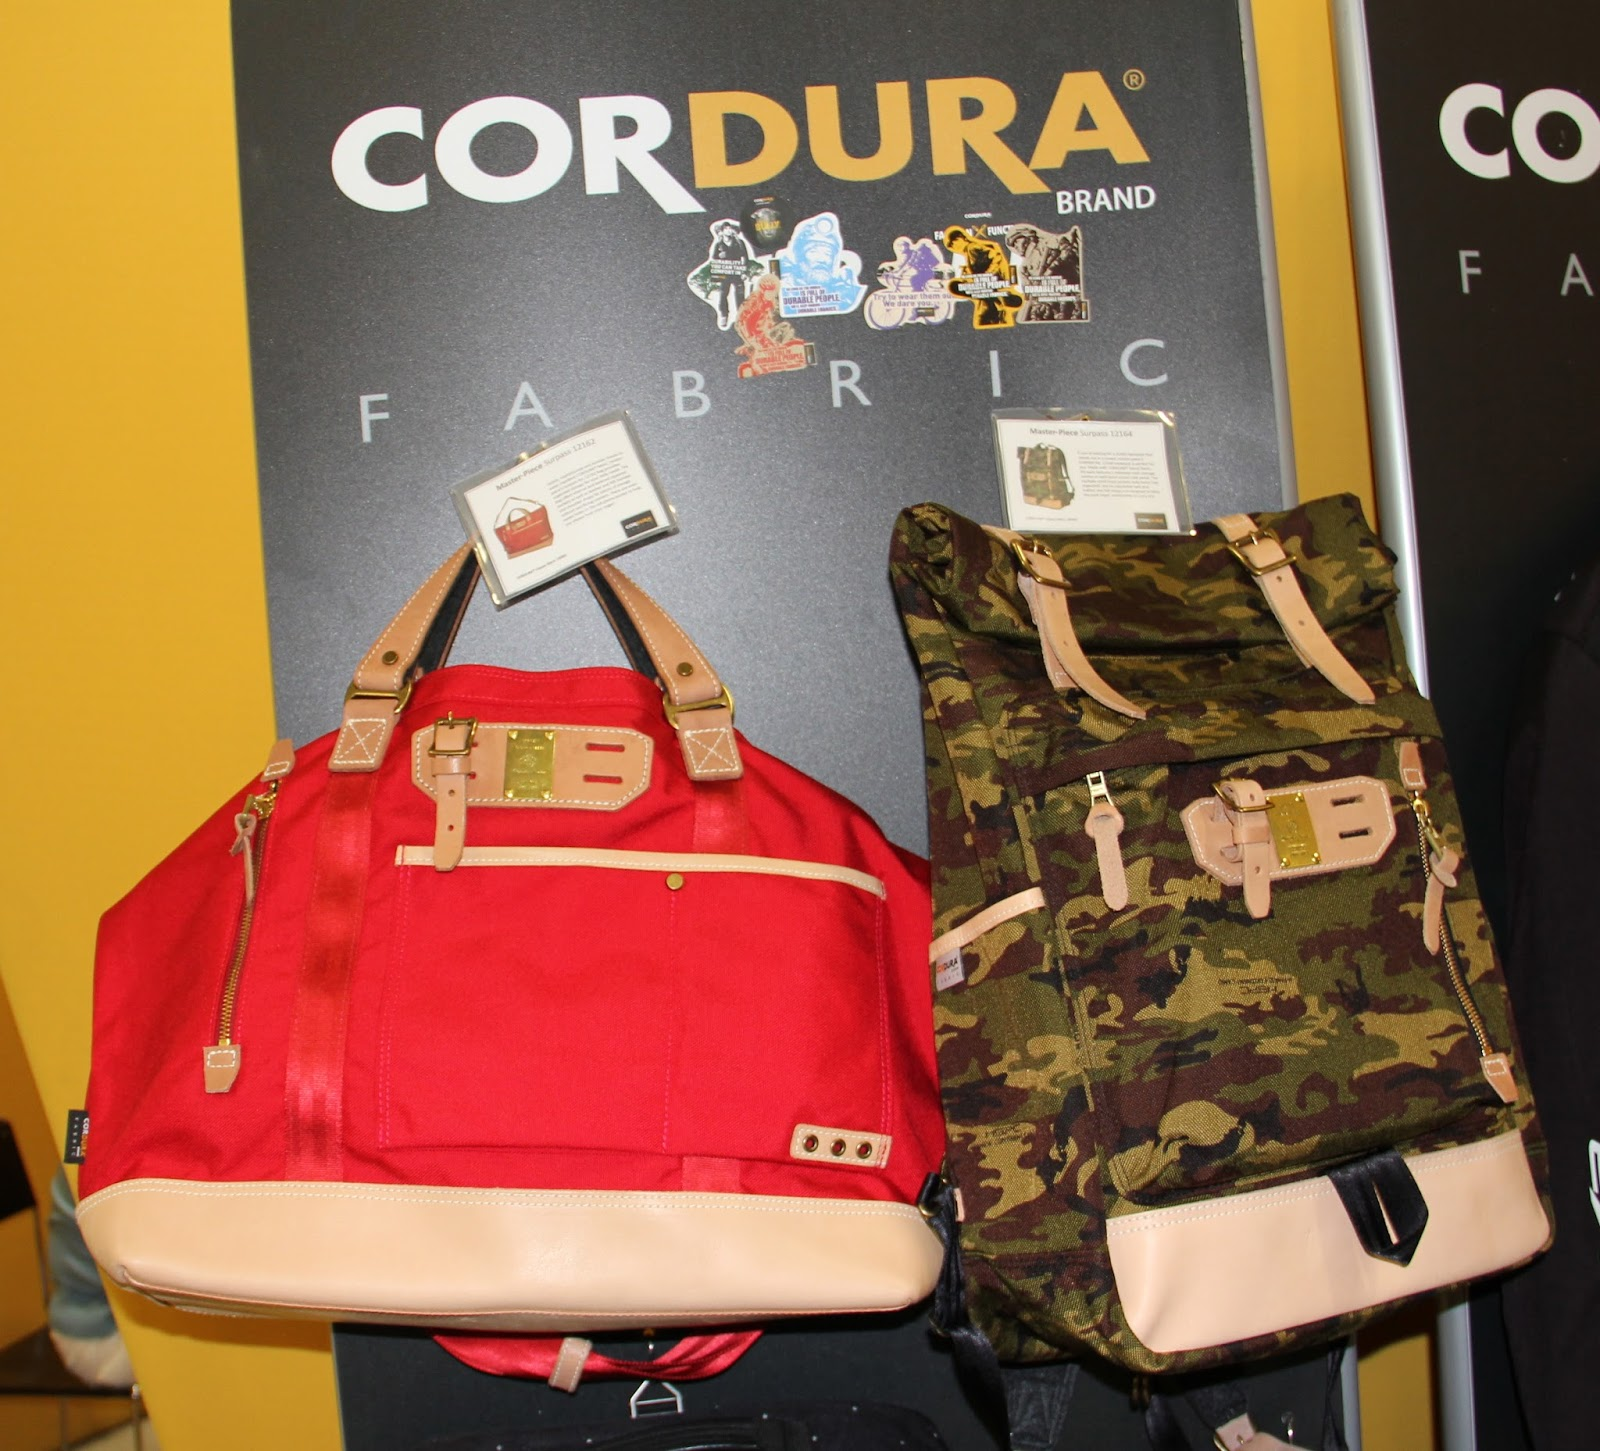 5421c04d26c 12164-a Japanese based company-Invista® s Cordura® Fabric and a whole lotta  style-company celebrating 20 years in the biz-with foldaway main storage ...